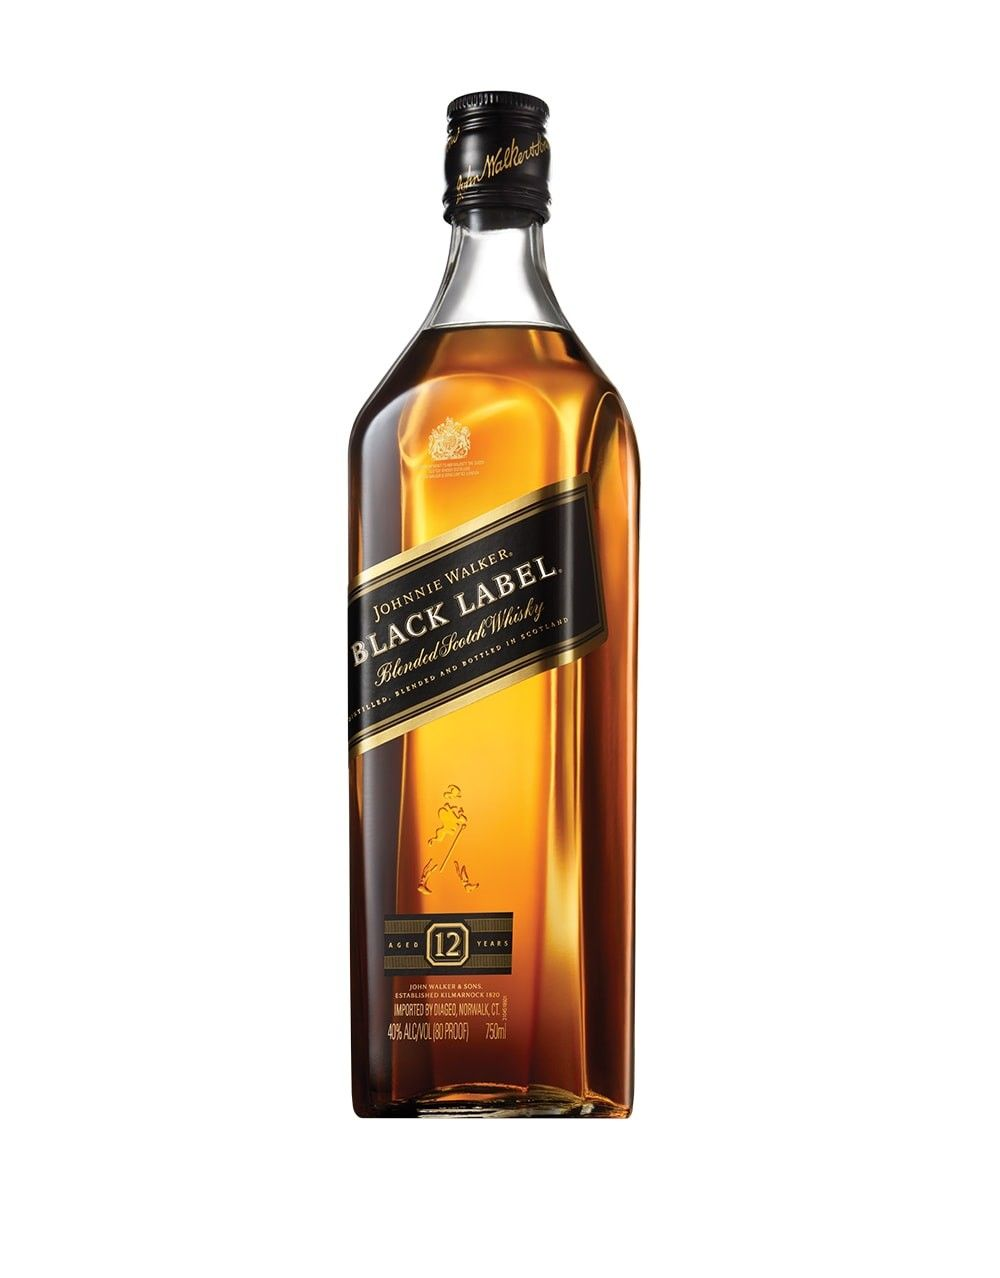 Johnnie Walker Black Label 174 Scotch Whisky Buy Online Or